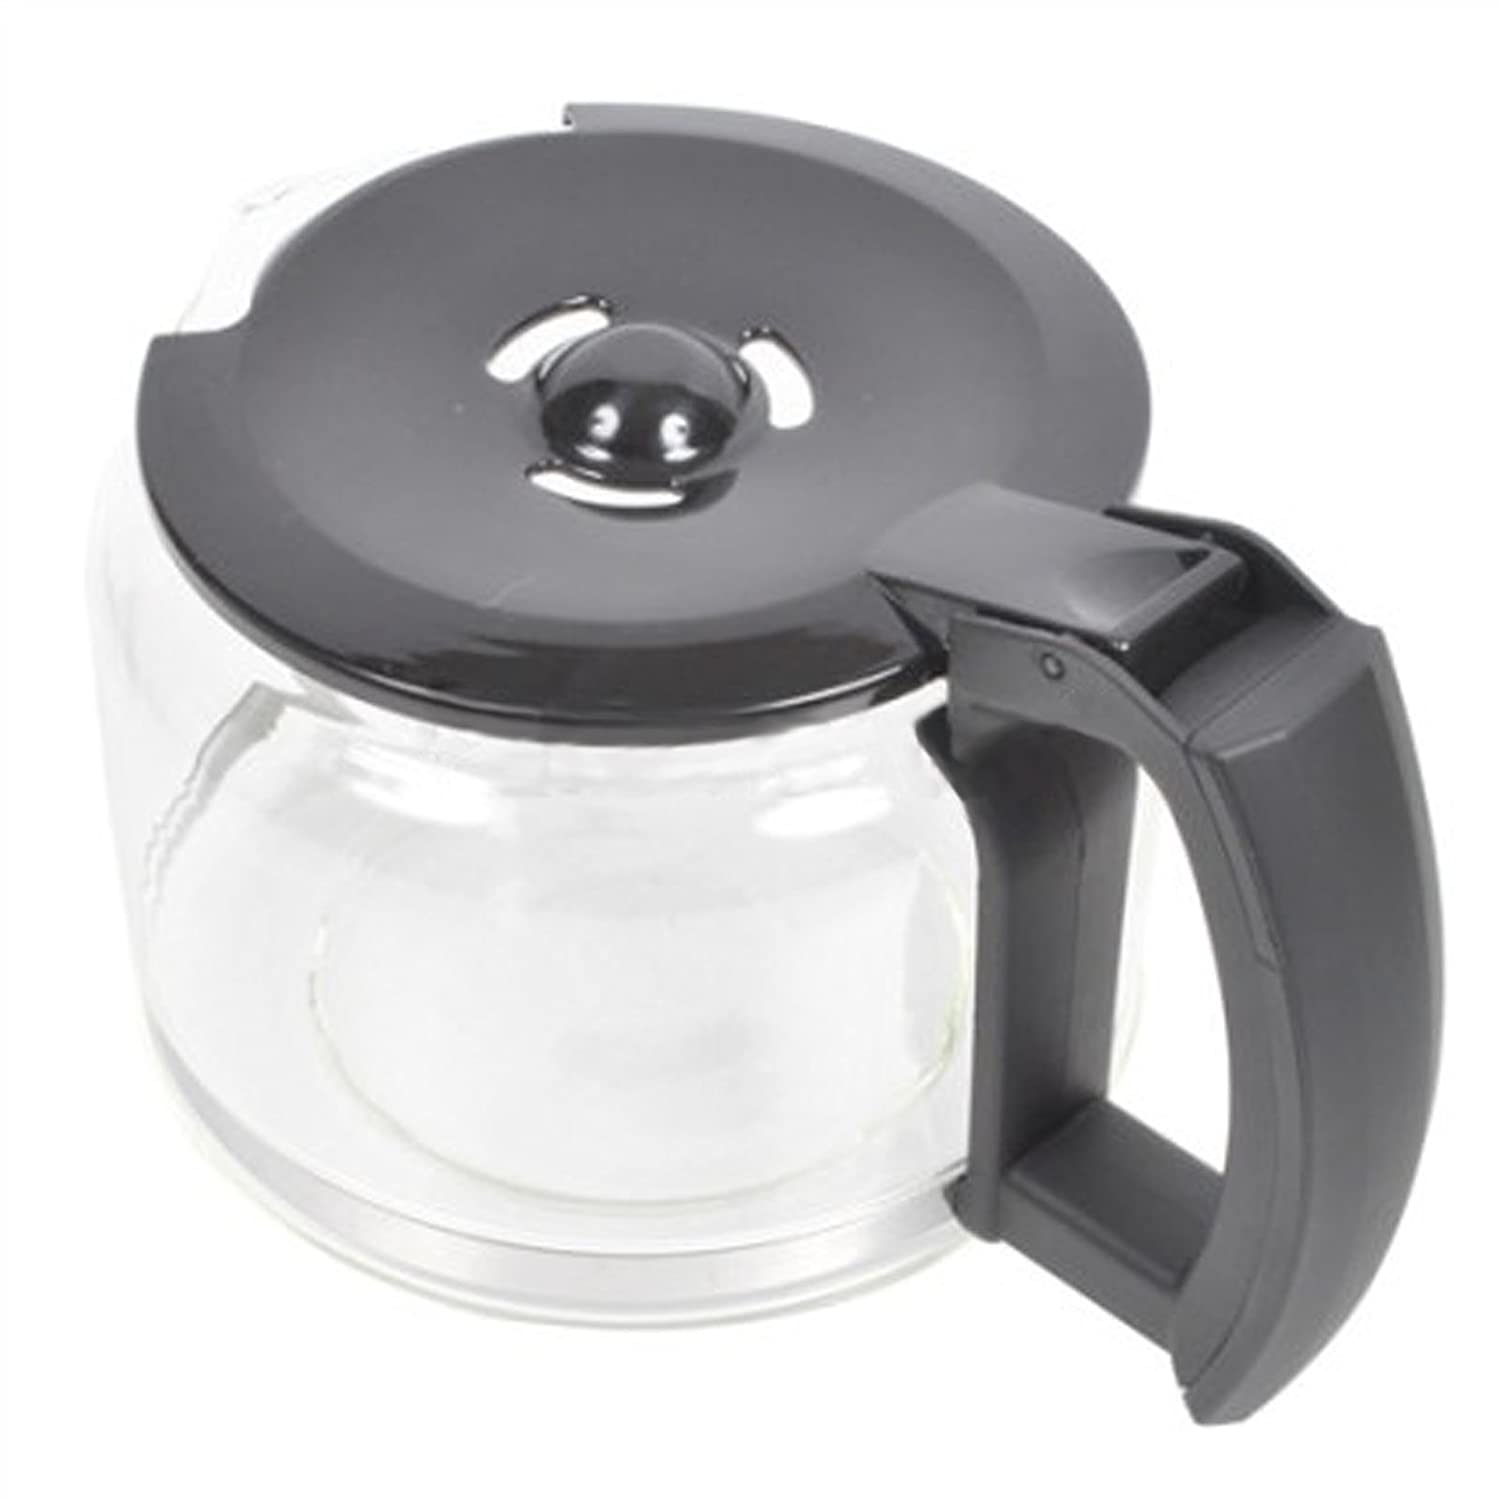 SPARES2GO Glass Jug Carafe for Russell Hobbs 14899 Coffee Machine